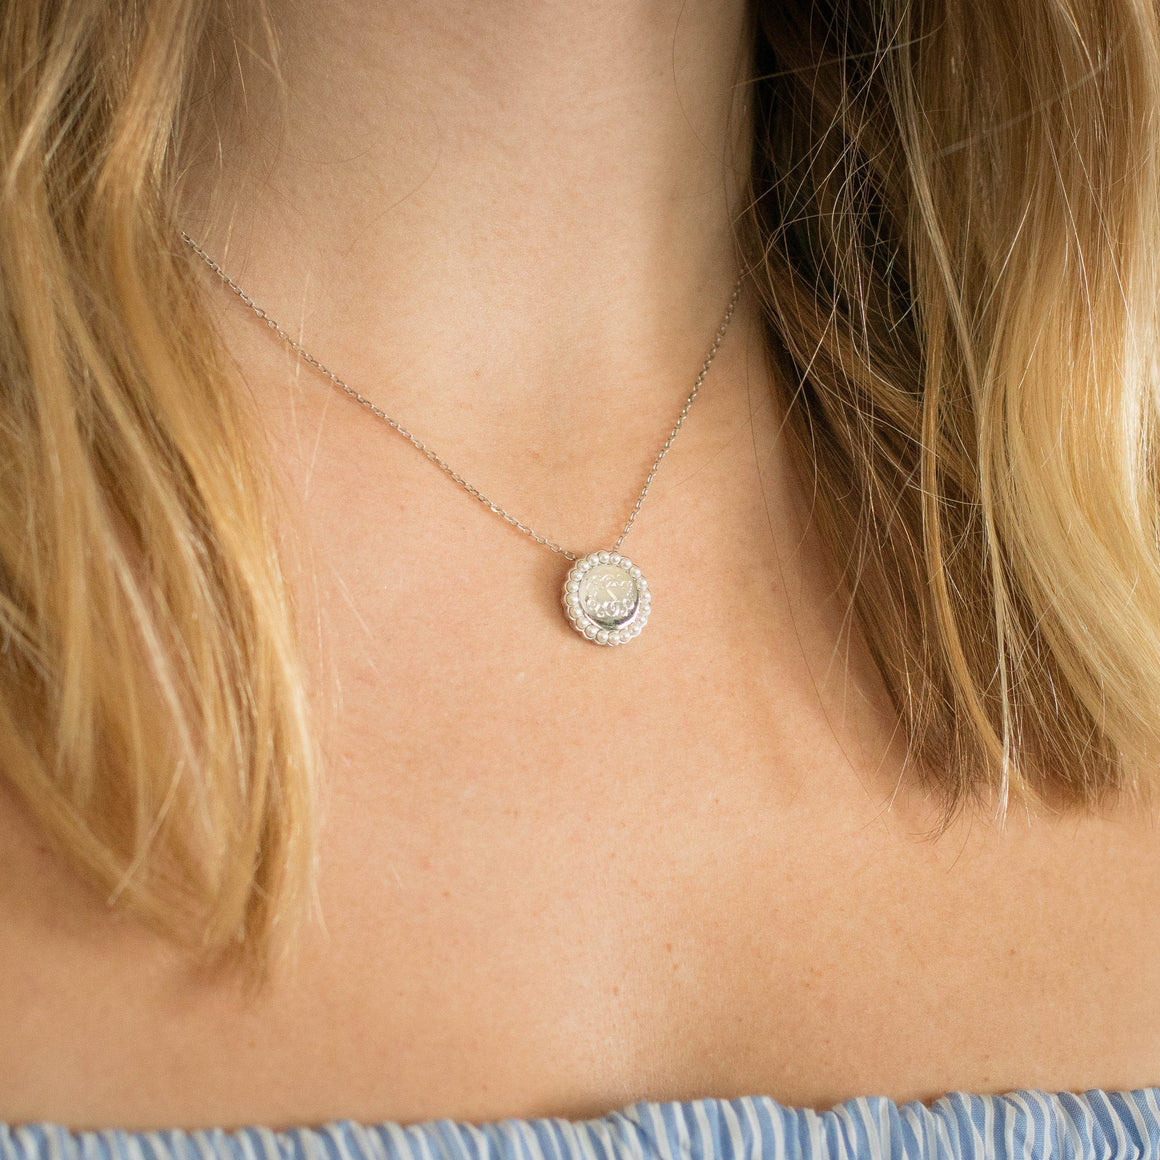 Monogram Pearl Necklace in Sterling Silver